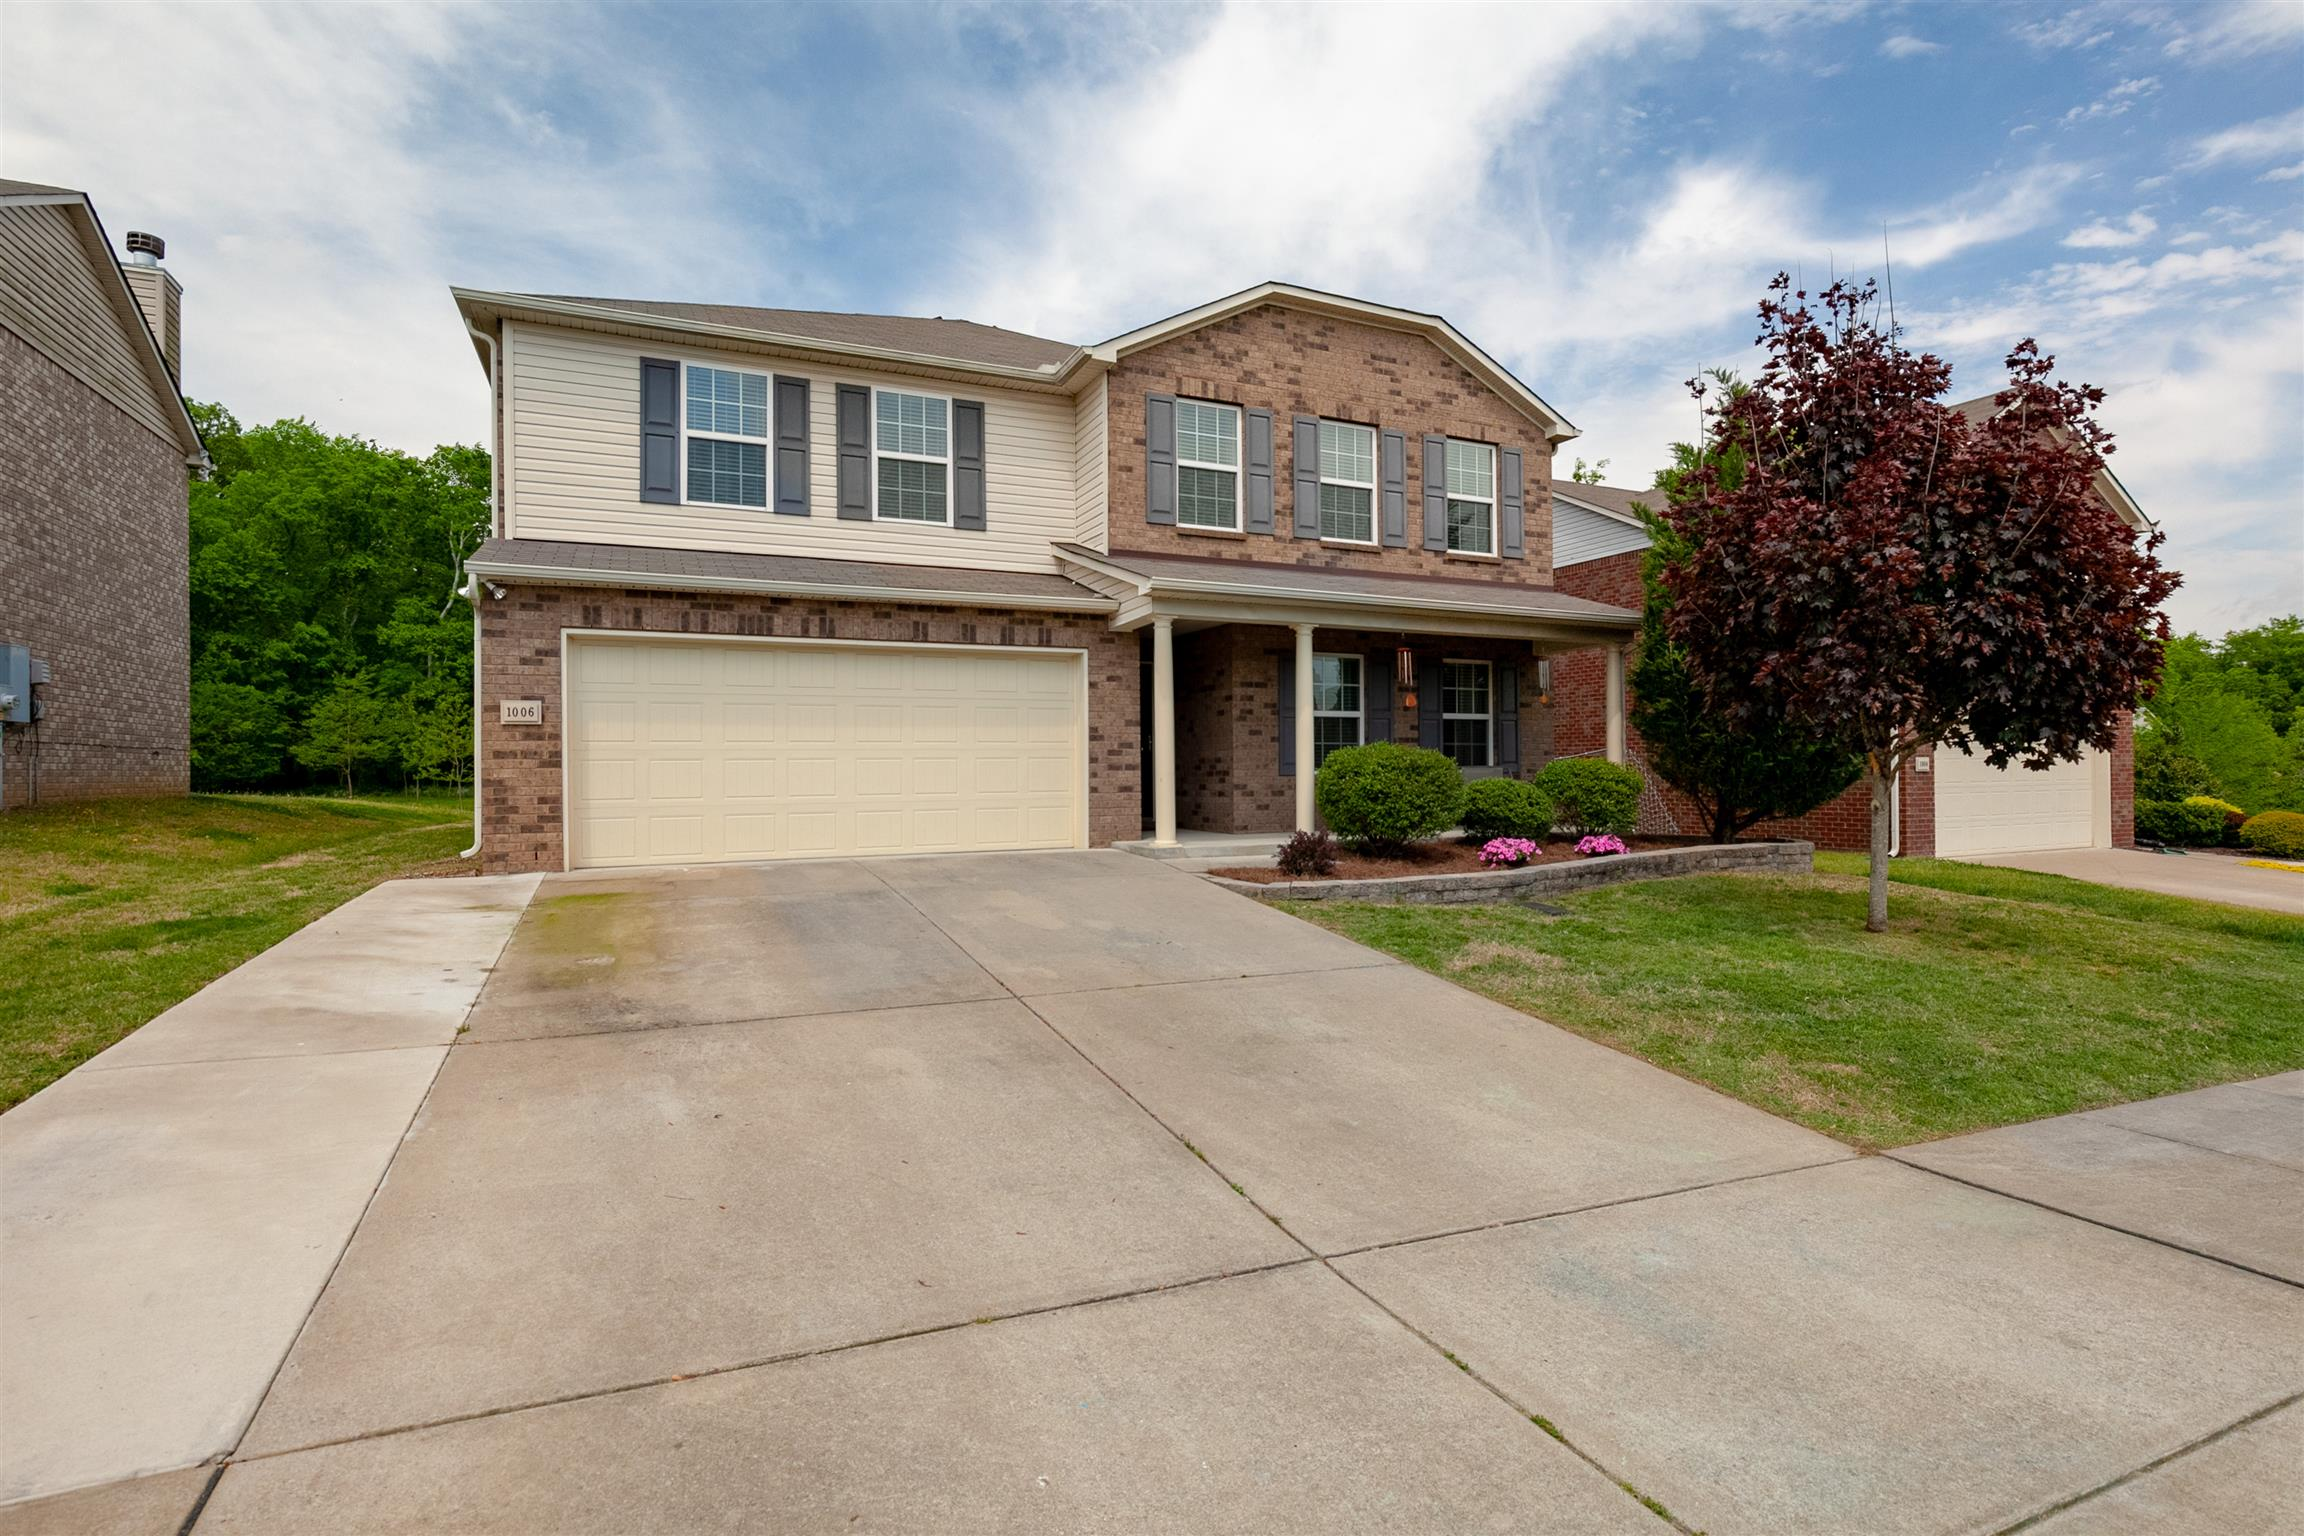 1006 Harmony Ln, Hendersonville in Sumner County County, TN 37075 Home for Sale